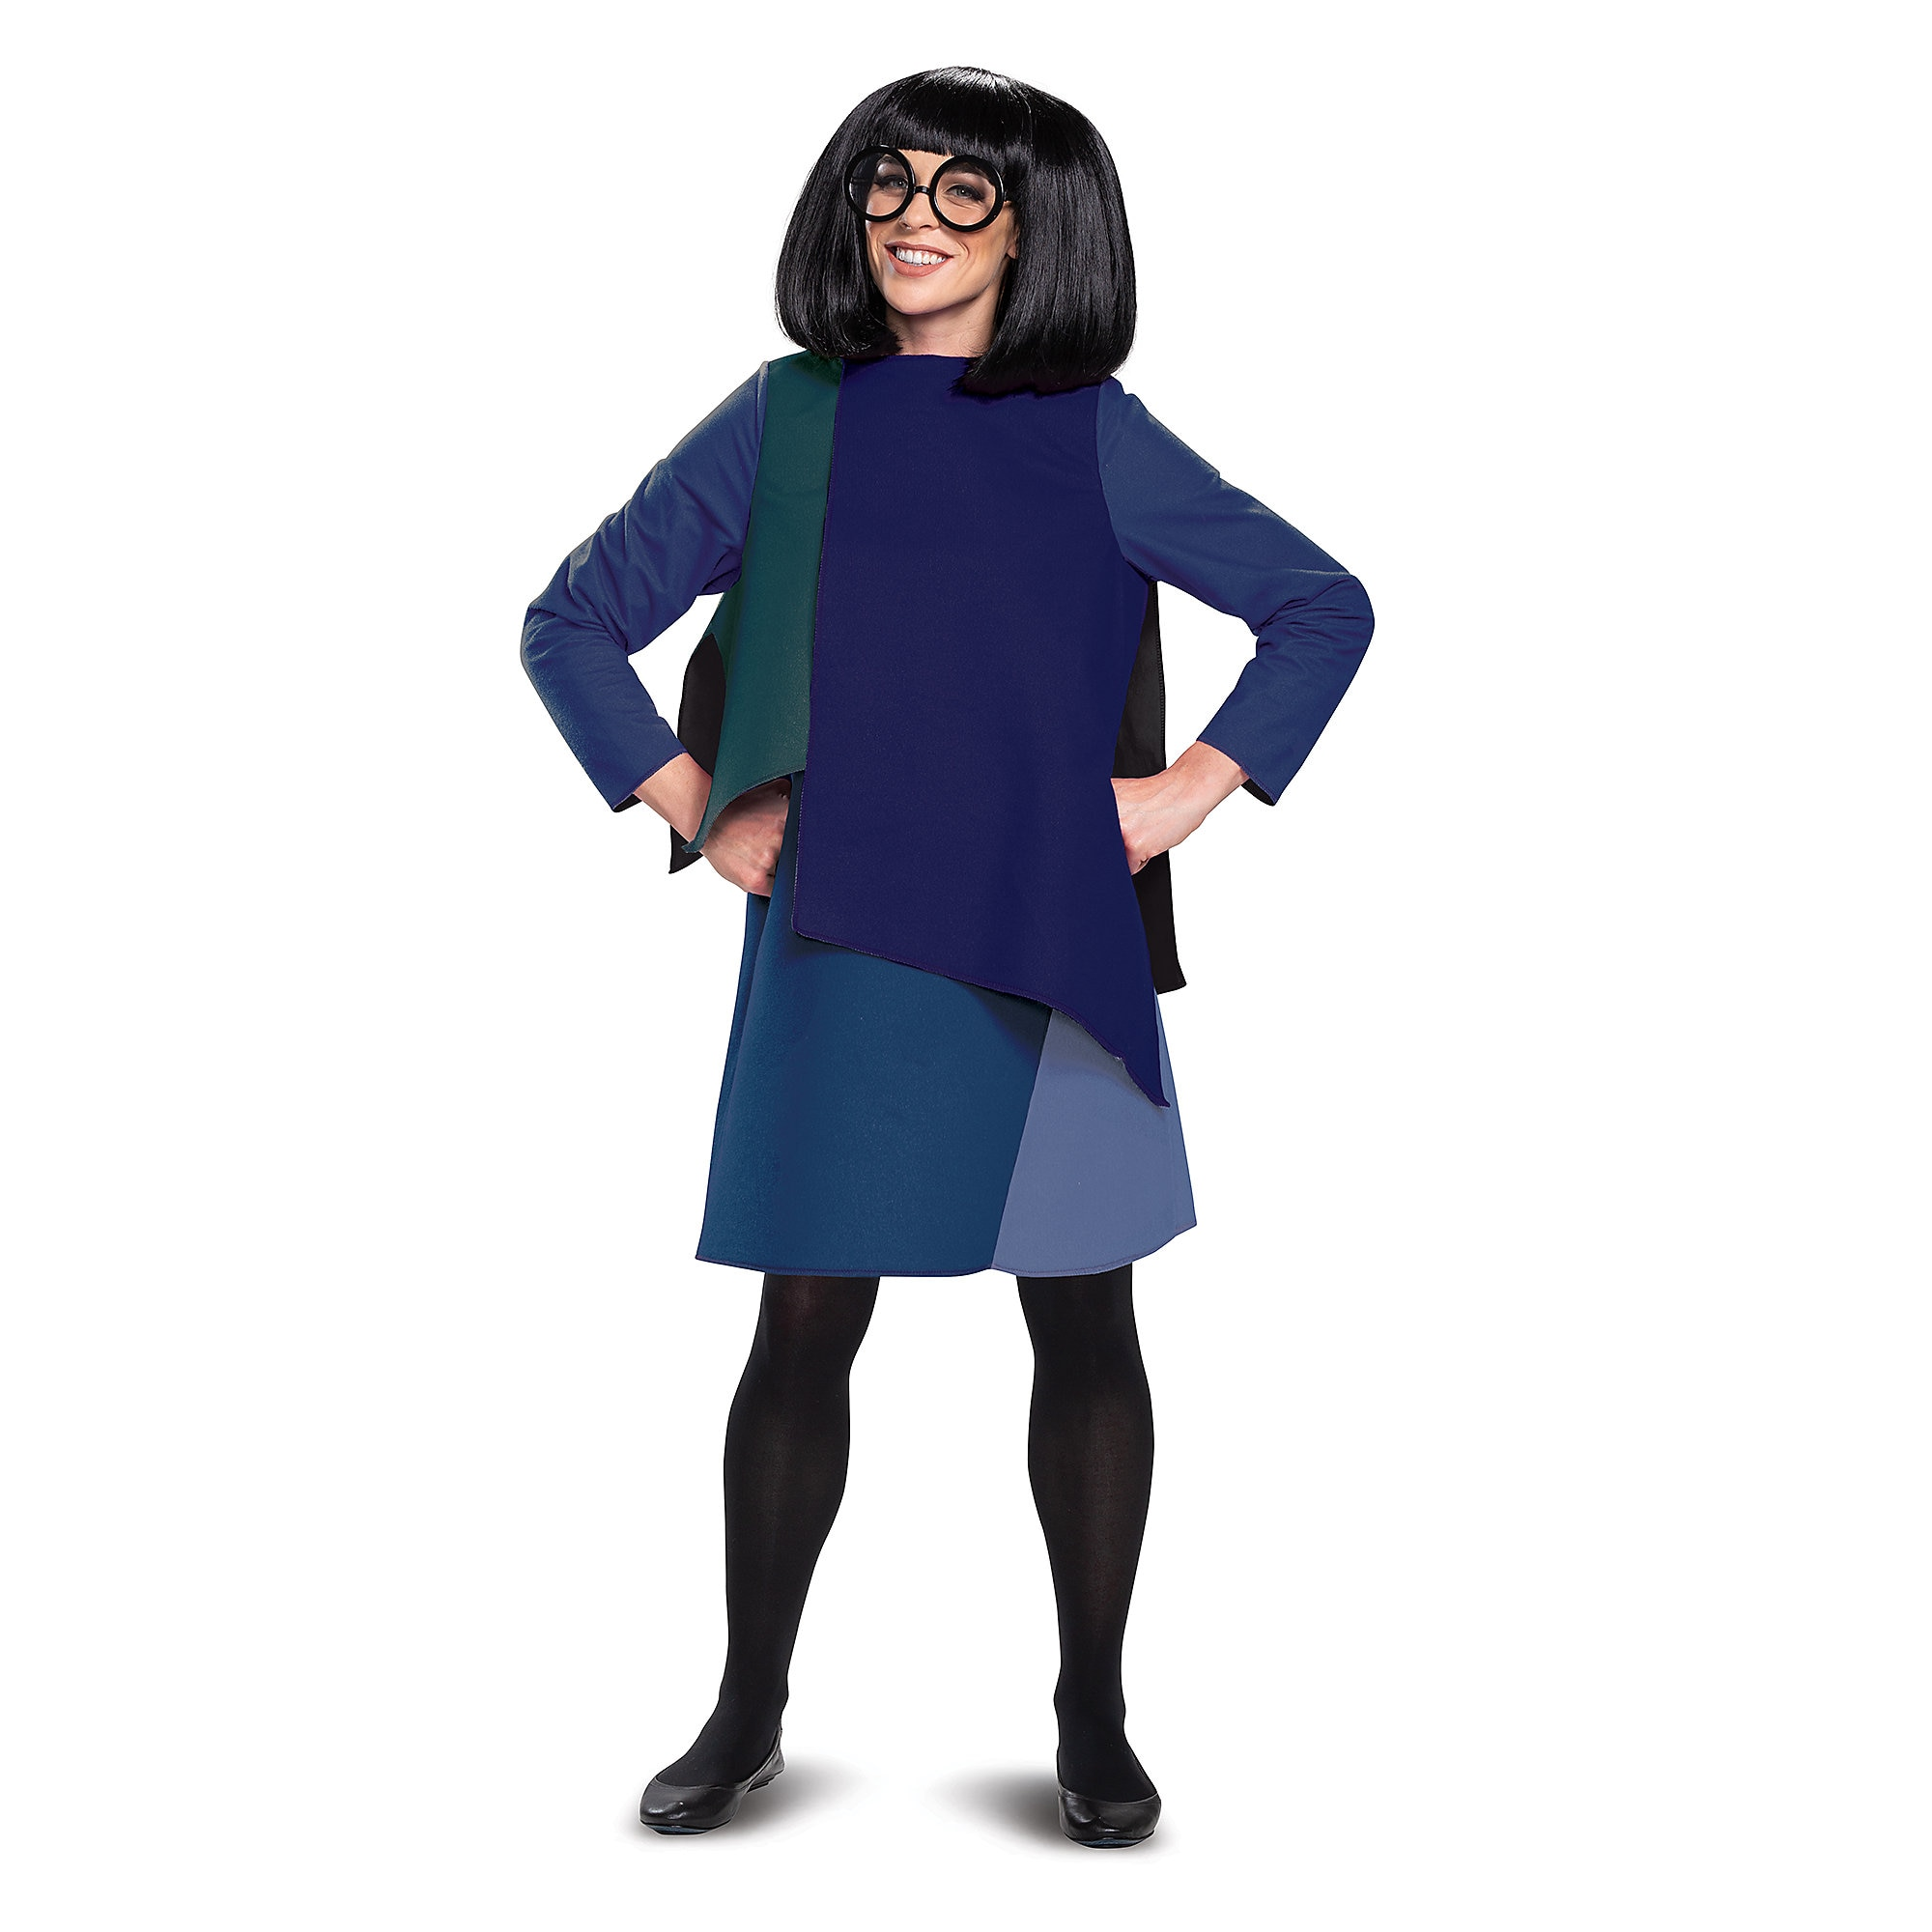 Edna Mode Deluxe Costume for Adults by Disguise - Incredibles 2  sc 1 st  shopDisney & Edna Mode Deluxe Costume for Adults by Disguise - Incredibles 2 ...